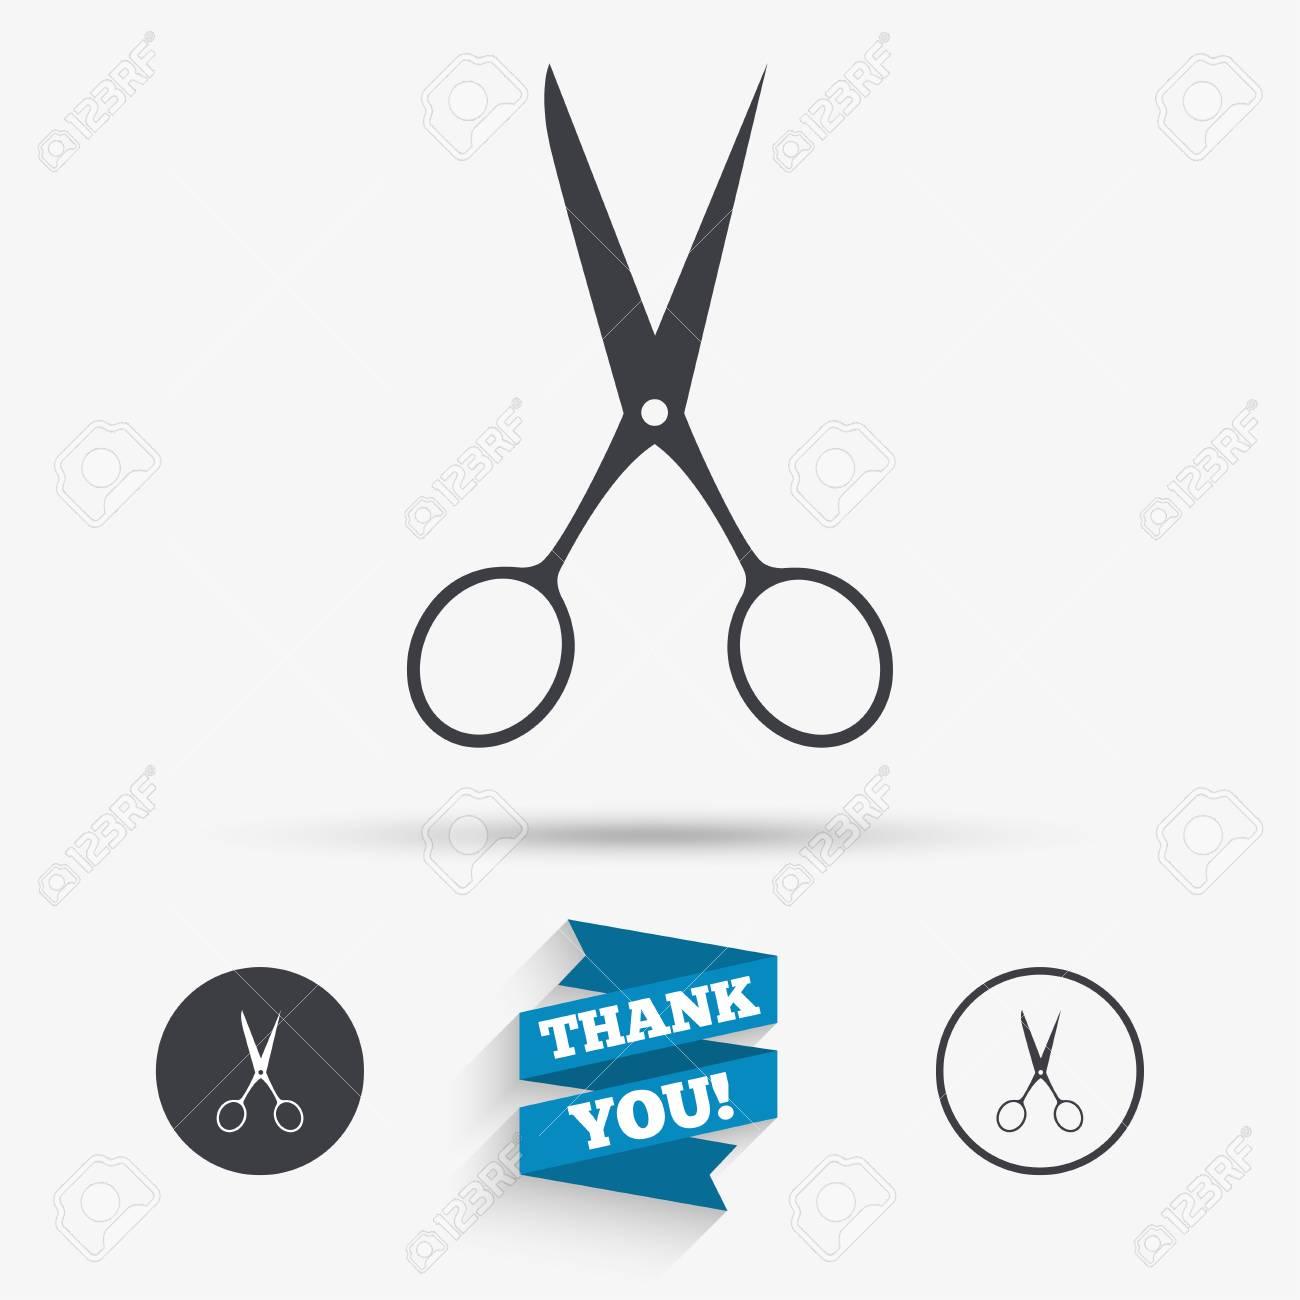 Scissors hairdresser sign icon tailor symbol flat icons buttons scissors hairdresser sign icon tailor symbol flat icons buttons with icons thank biocorpaavc